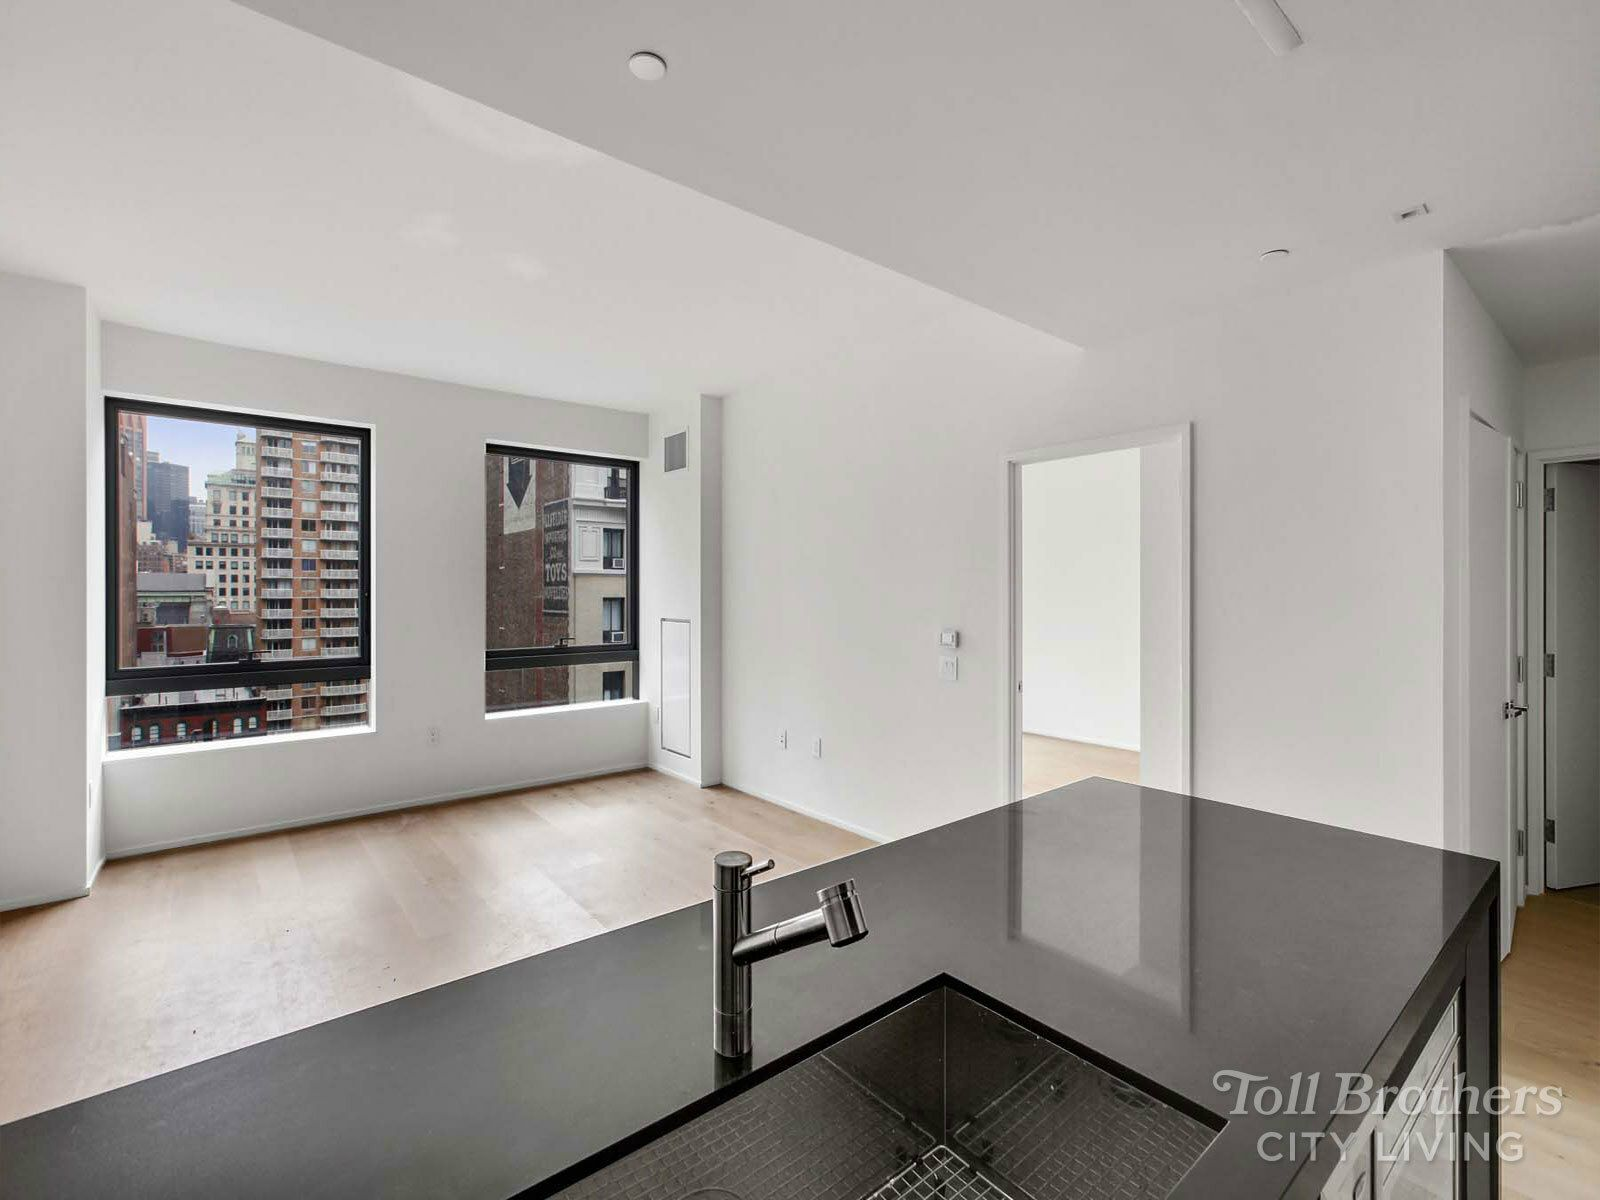 Kitchen featured in the N1004 By Toll Brothers in New York, NY